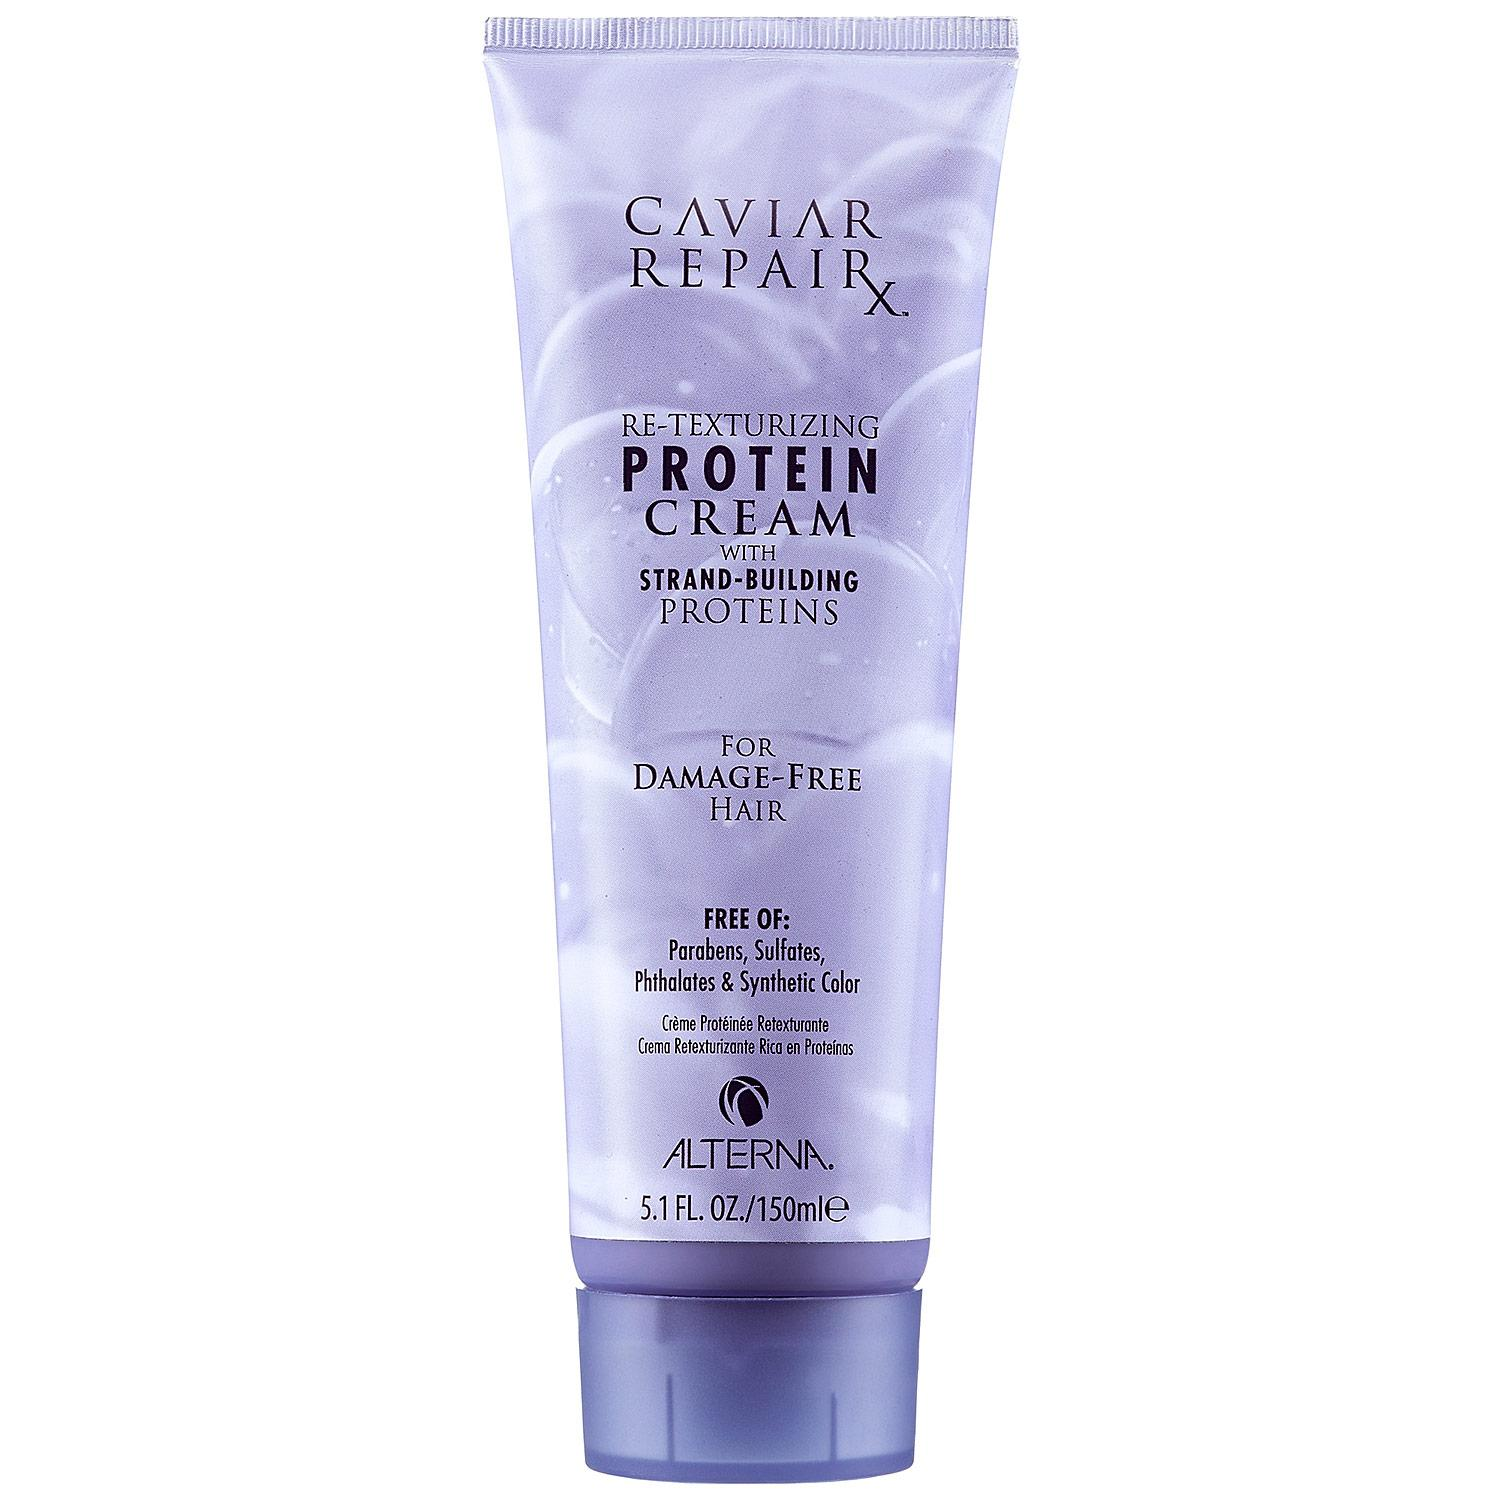 Caviar Repair RX Re-Texturizing Protein Cream